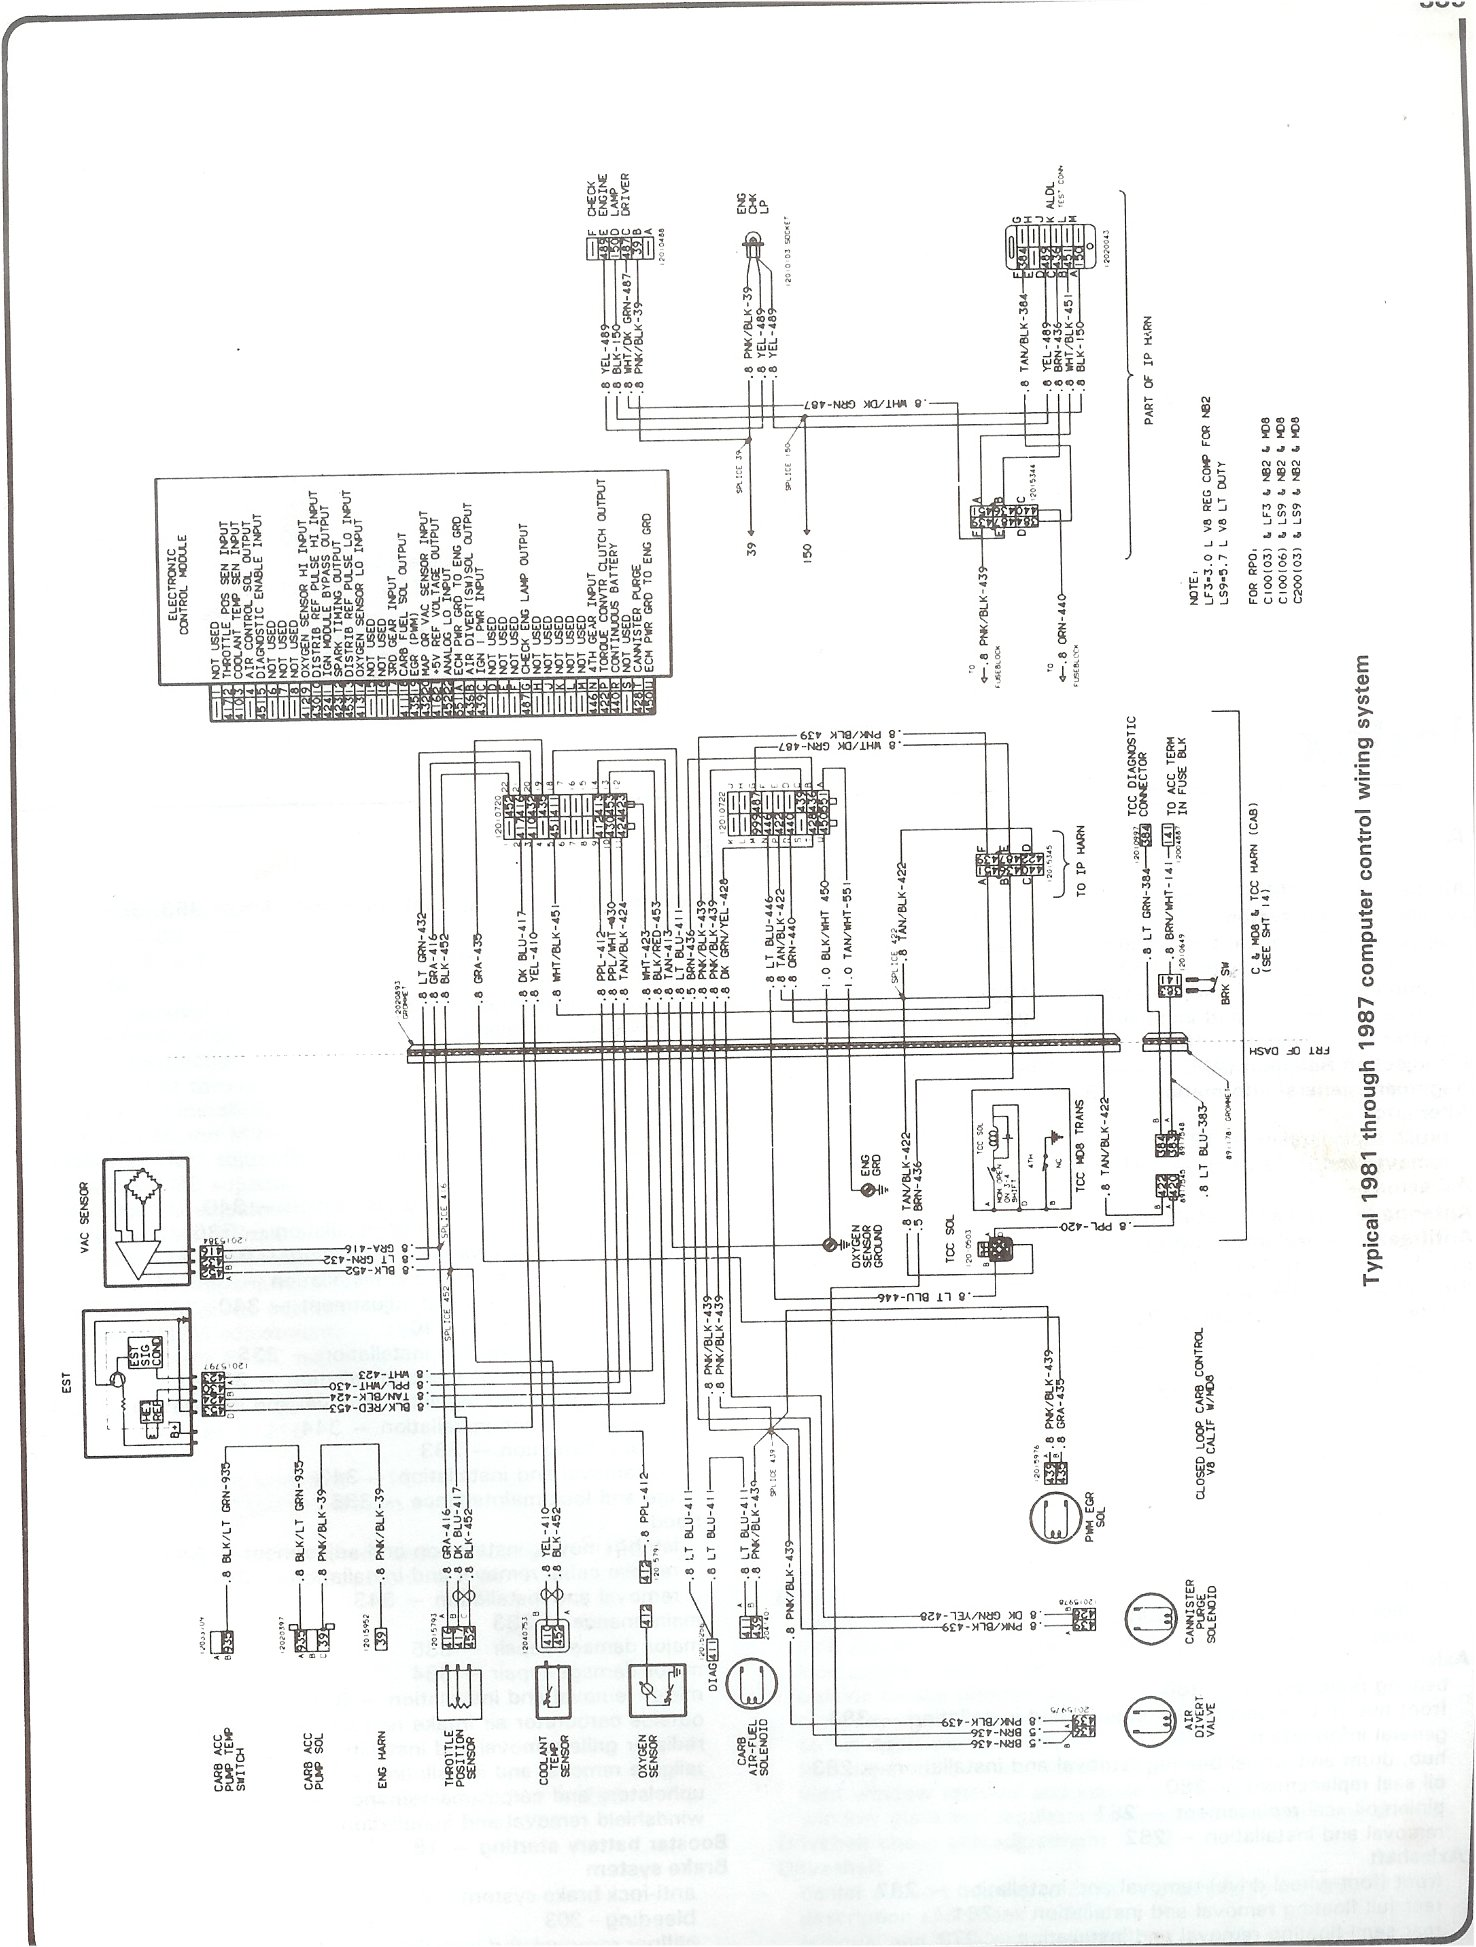 81 87_computer_control_wiring complete 73 87 wiring diagrams c10 wiring diagram at edmiracle.co